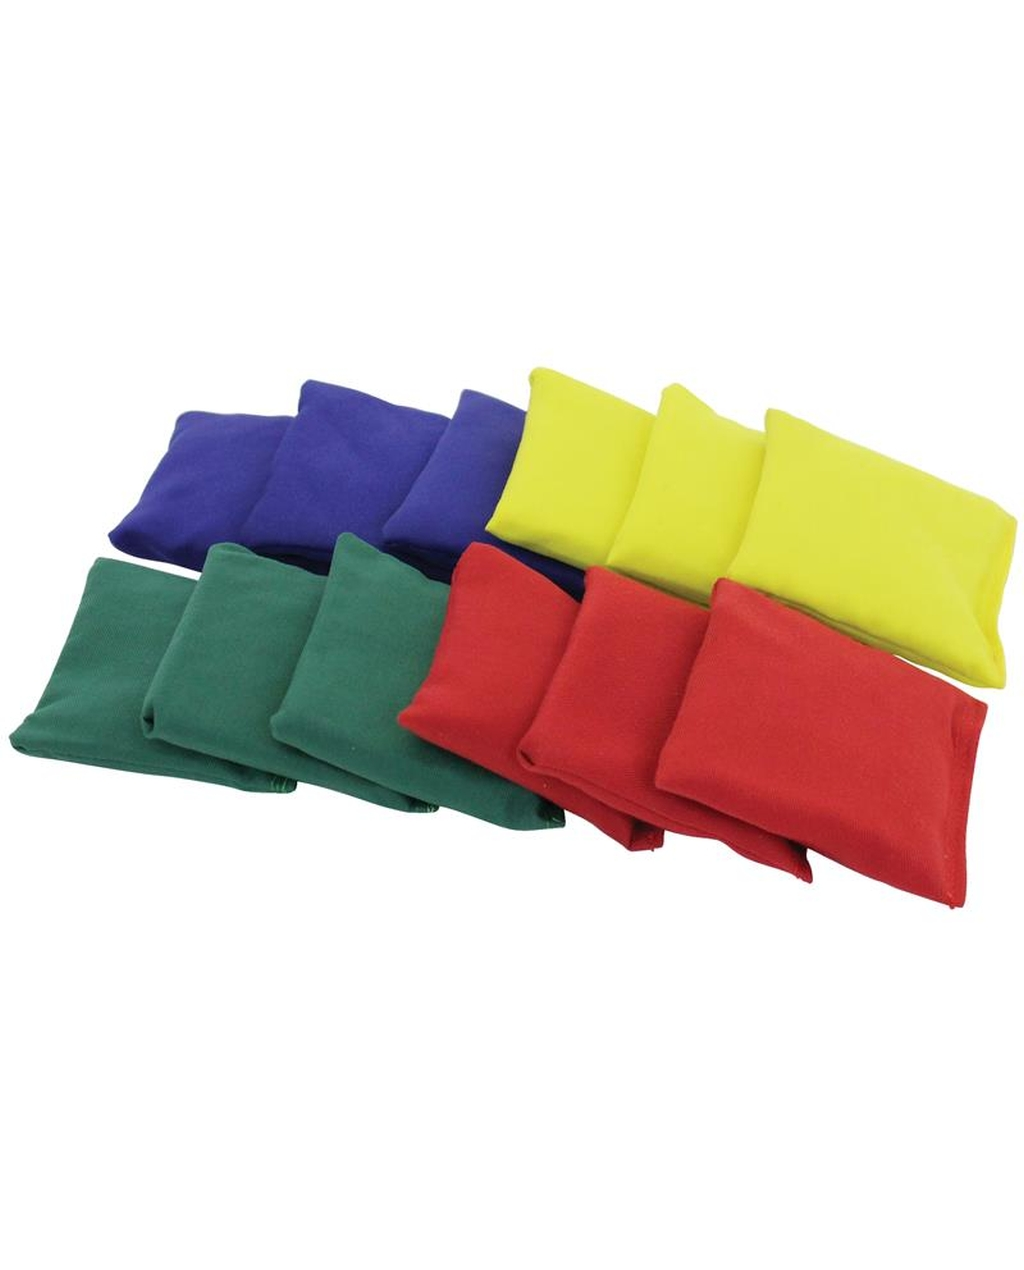 Rectangular Cotton Bean Bags